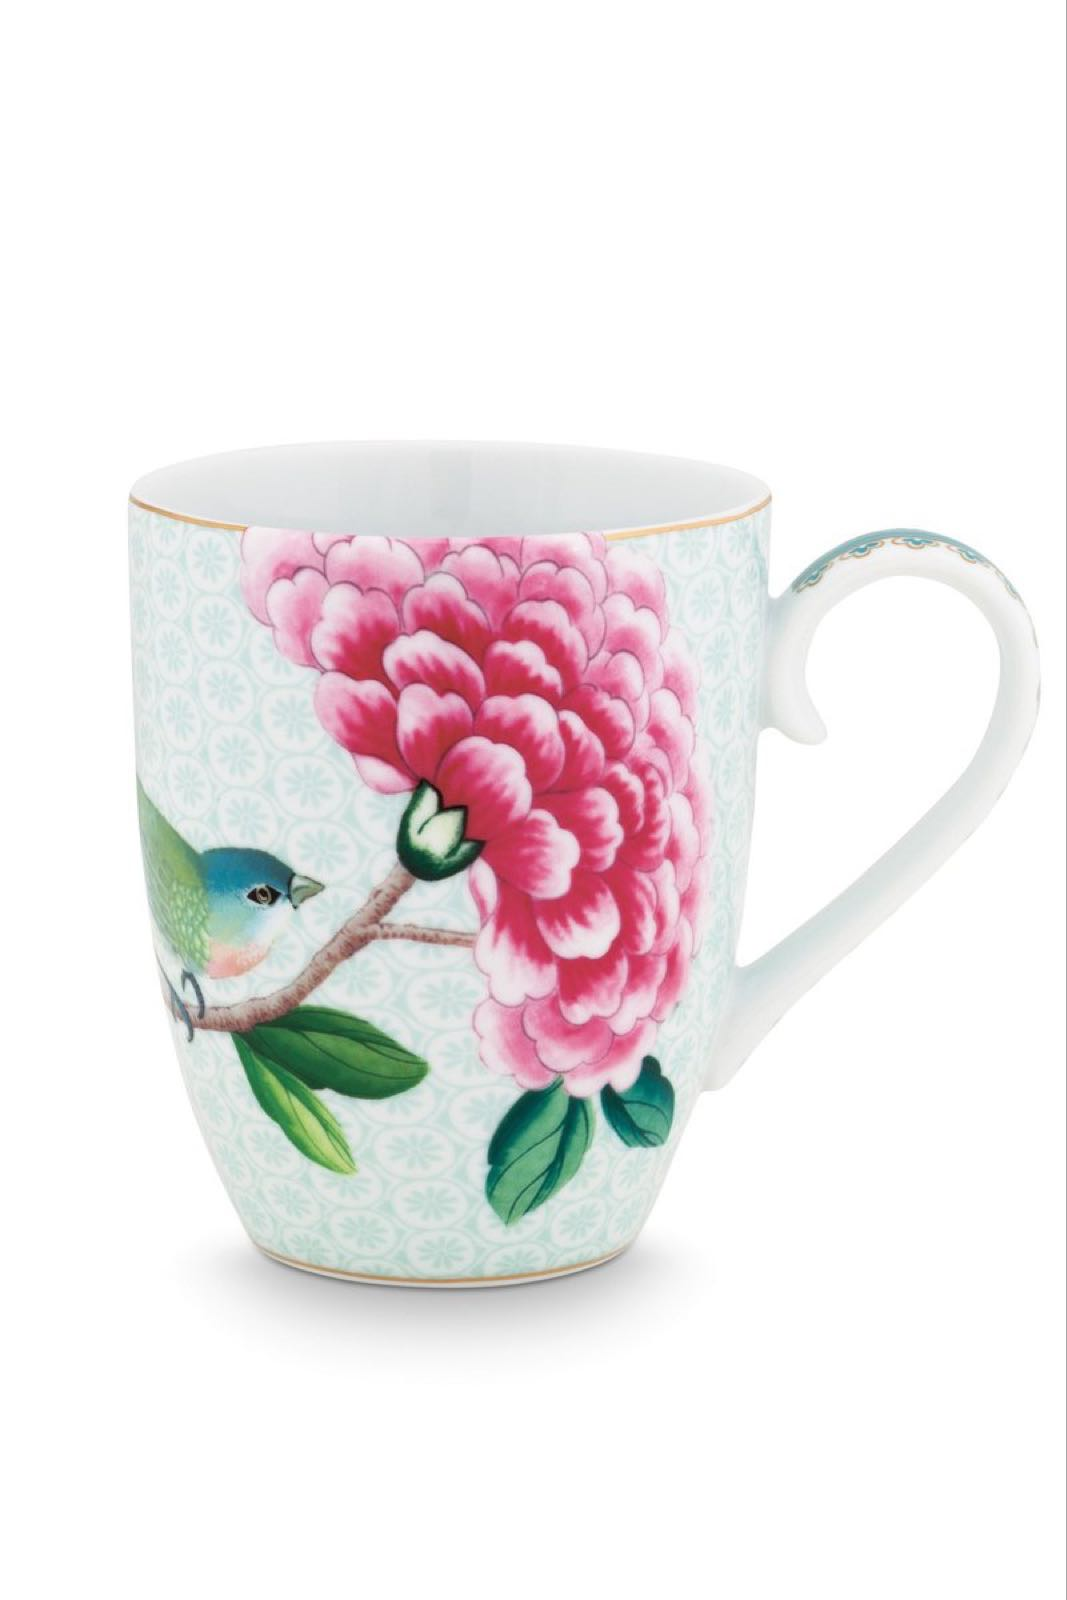 Pip studio blushing birds large mug